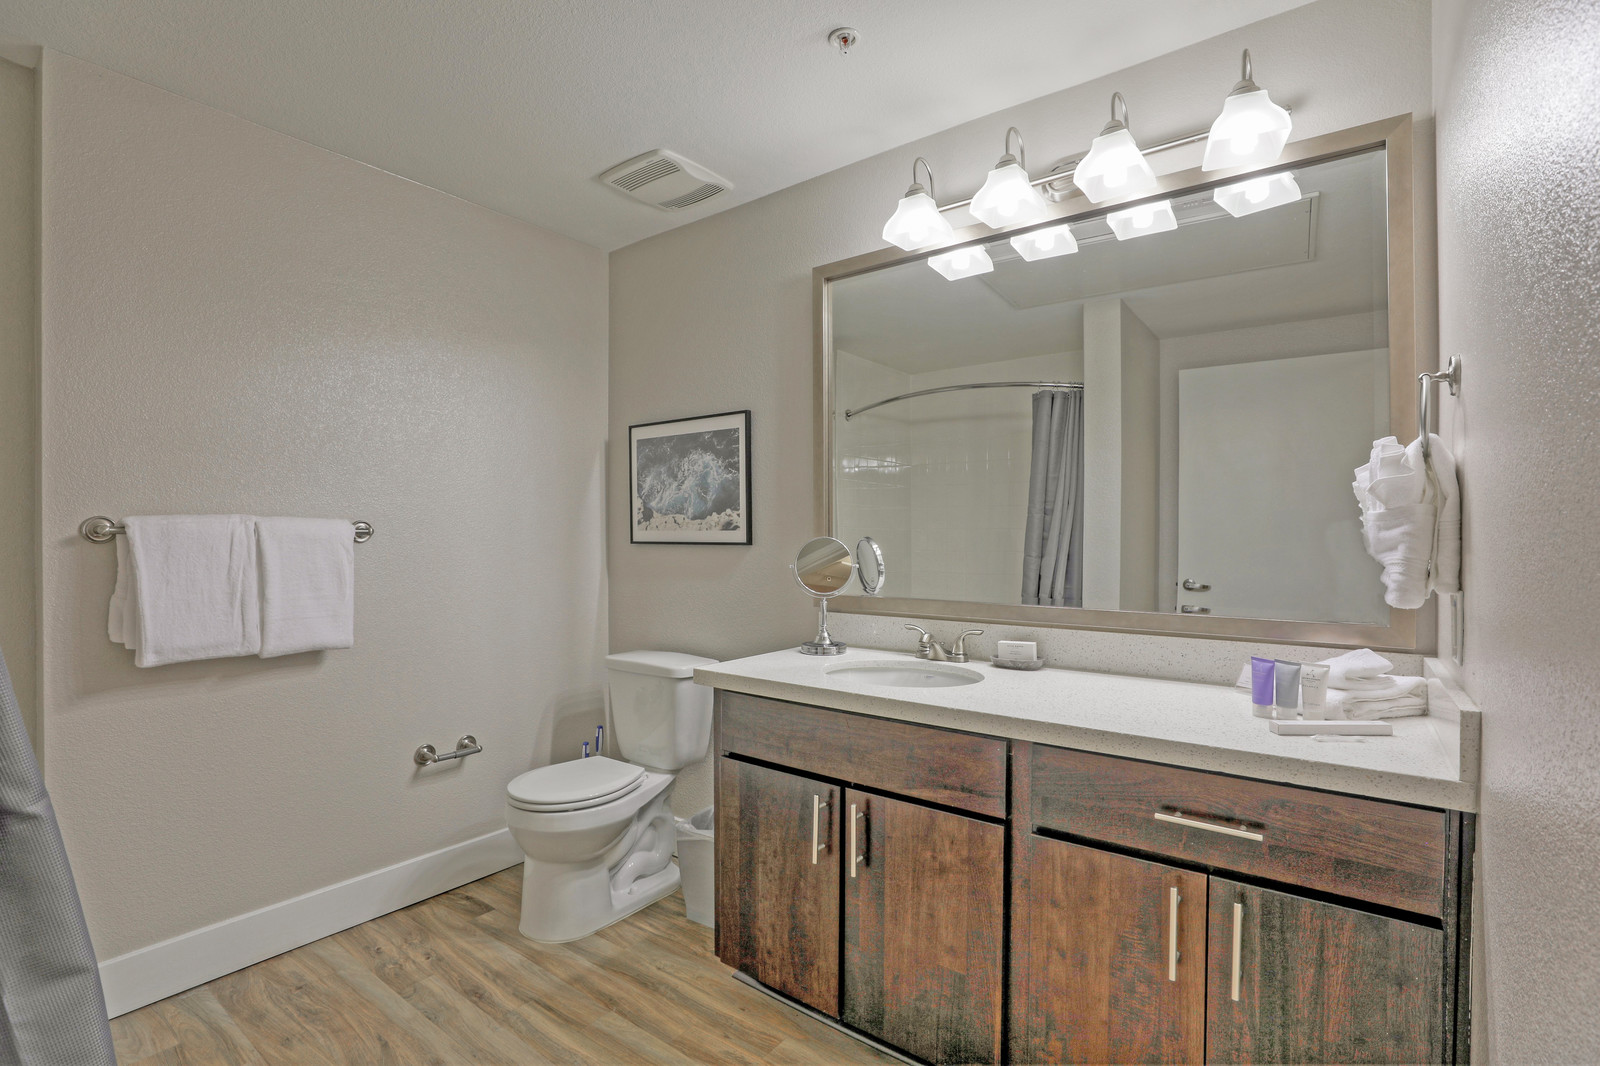 Bathroom at The Village Residences